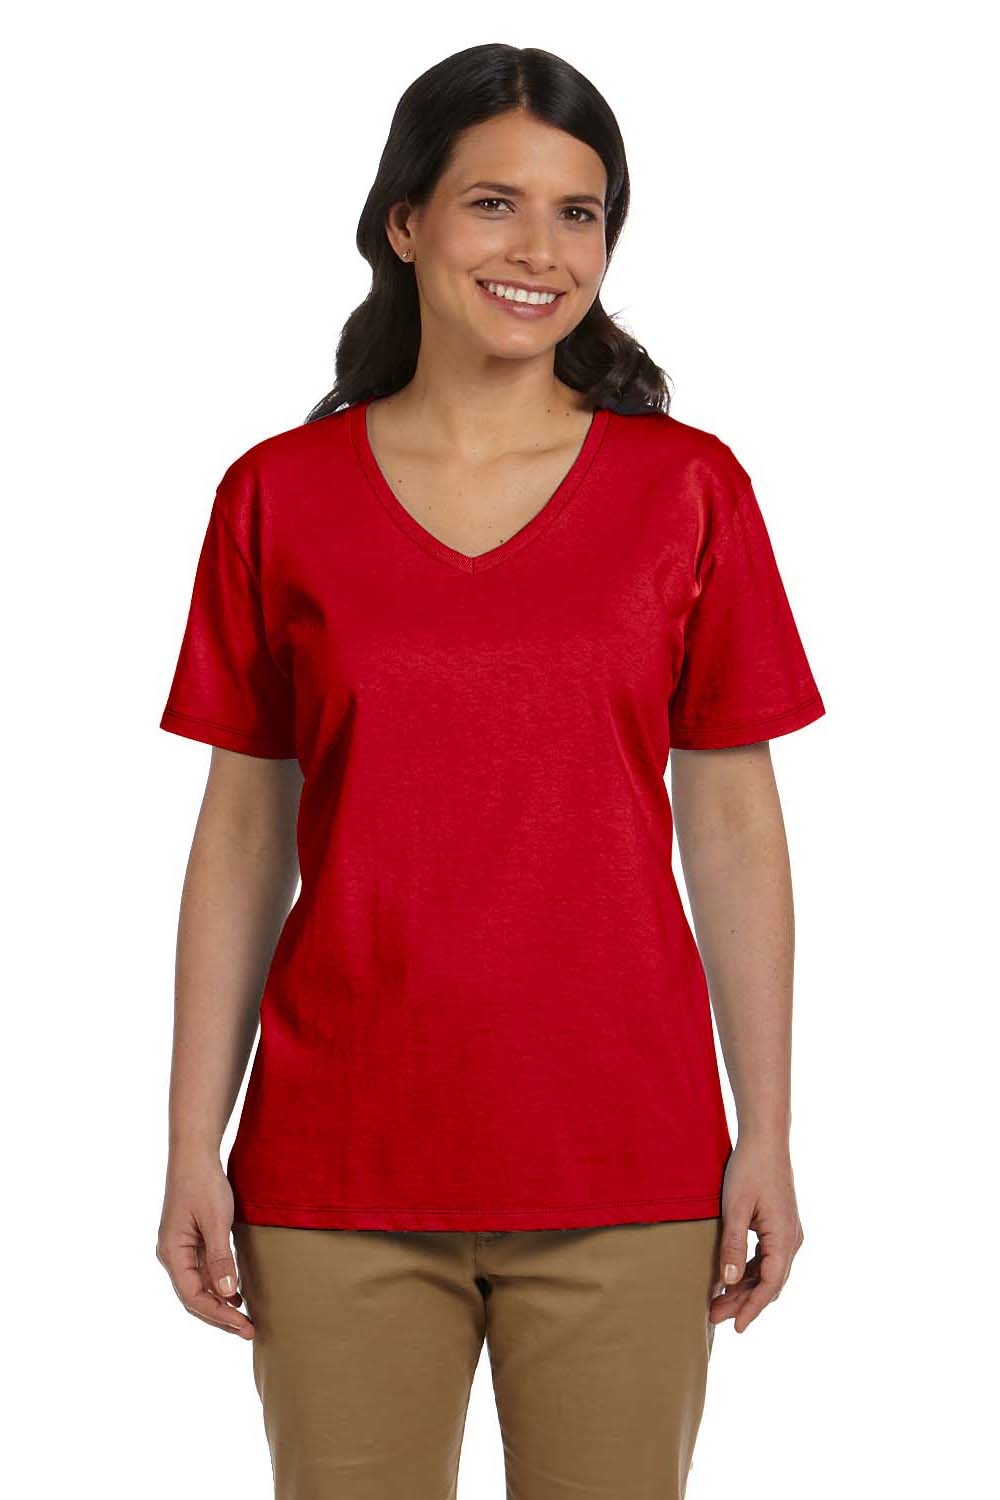 Hanes 5780 Womens ComfortSoft Short Sleeve V-Neck T-Shirt Red Front